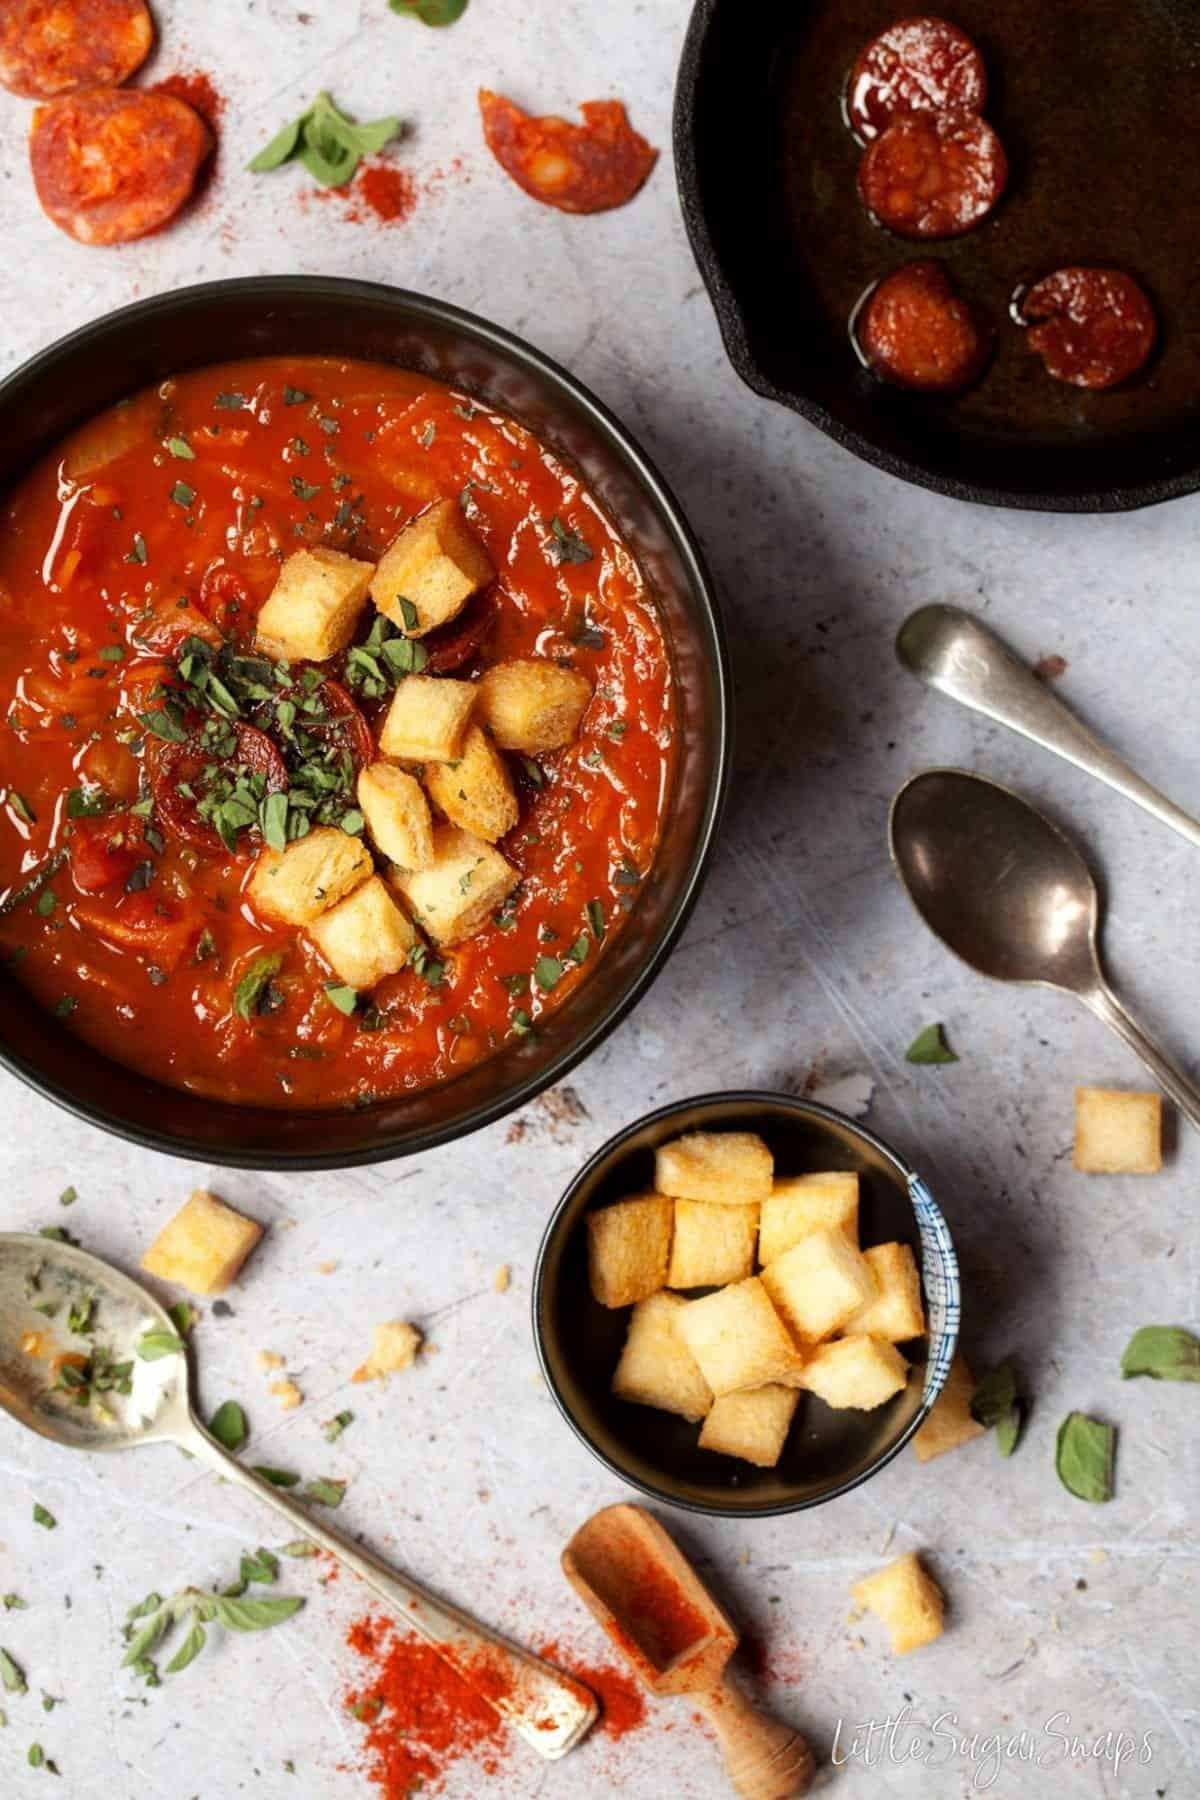 Tomato, Carrot and courgette soup in a bowl with croutons and fresh oregano